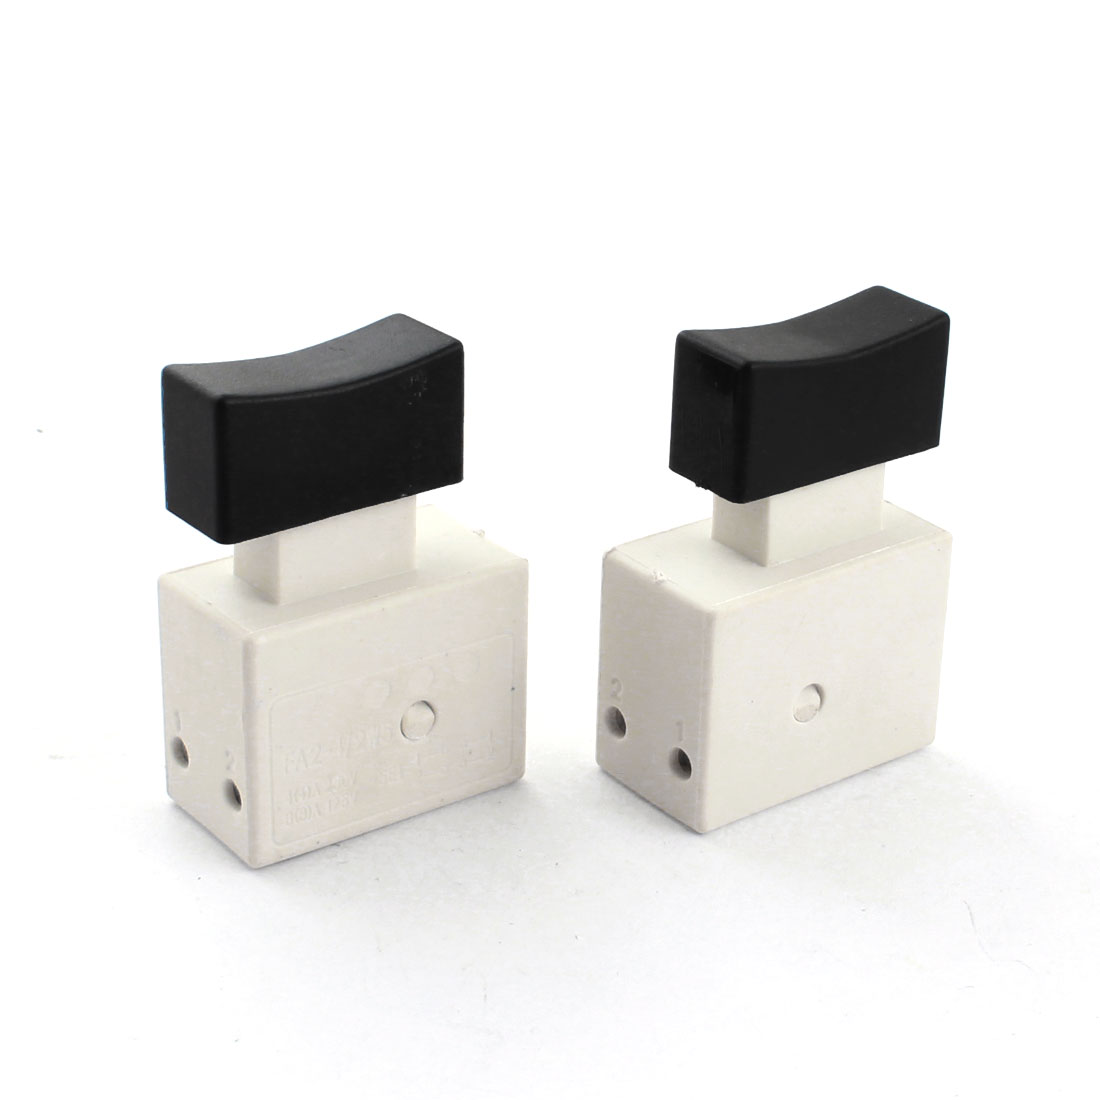 2 Pcs FA2-4/2W5 DPST 2NO Momentary Action Trigger Switch for Electric Drill